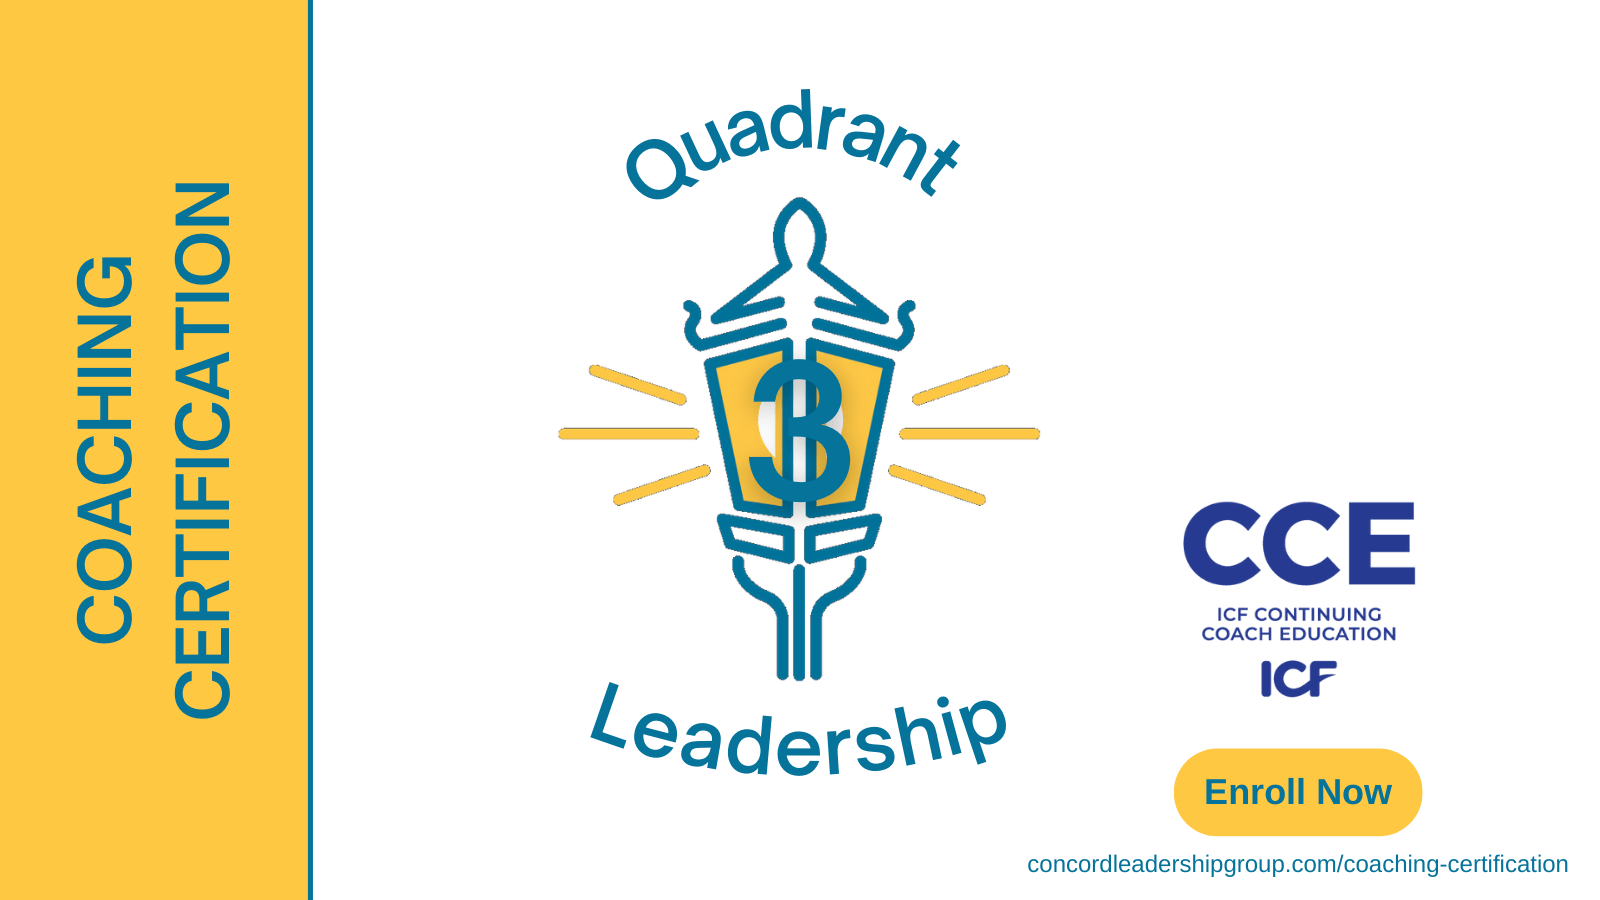 Become a certified coach - Quadrant 3 Leadership Coaching Certification ICF CCE credits